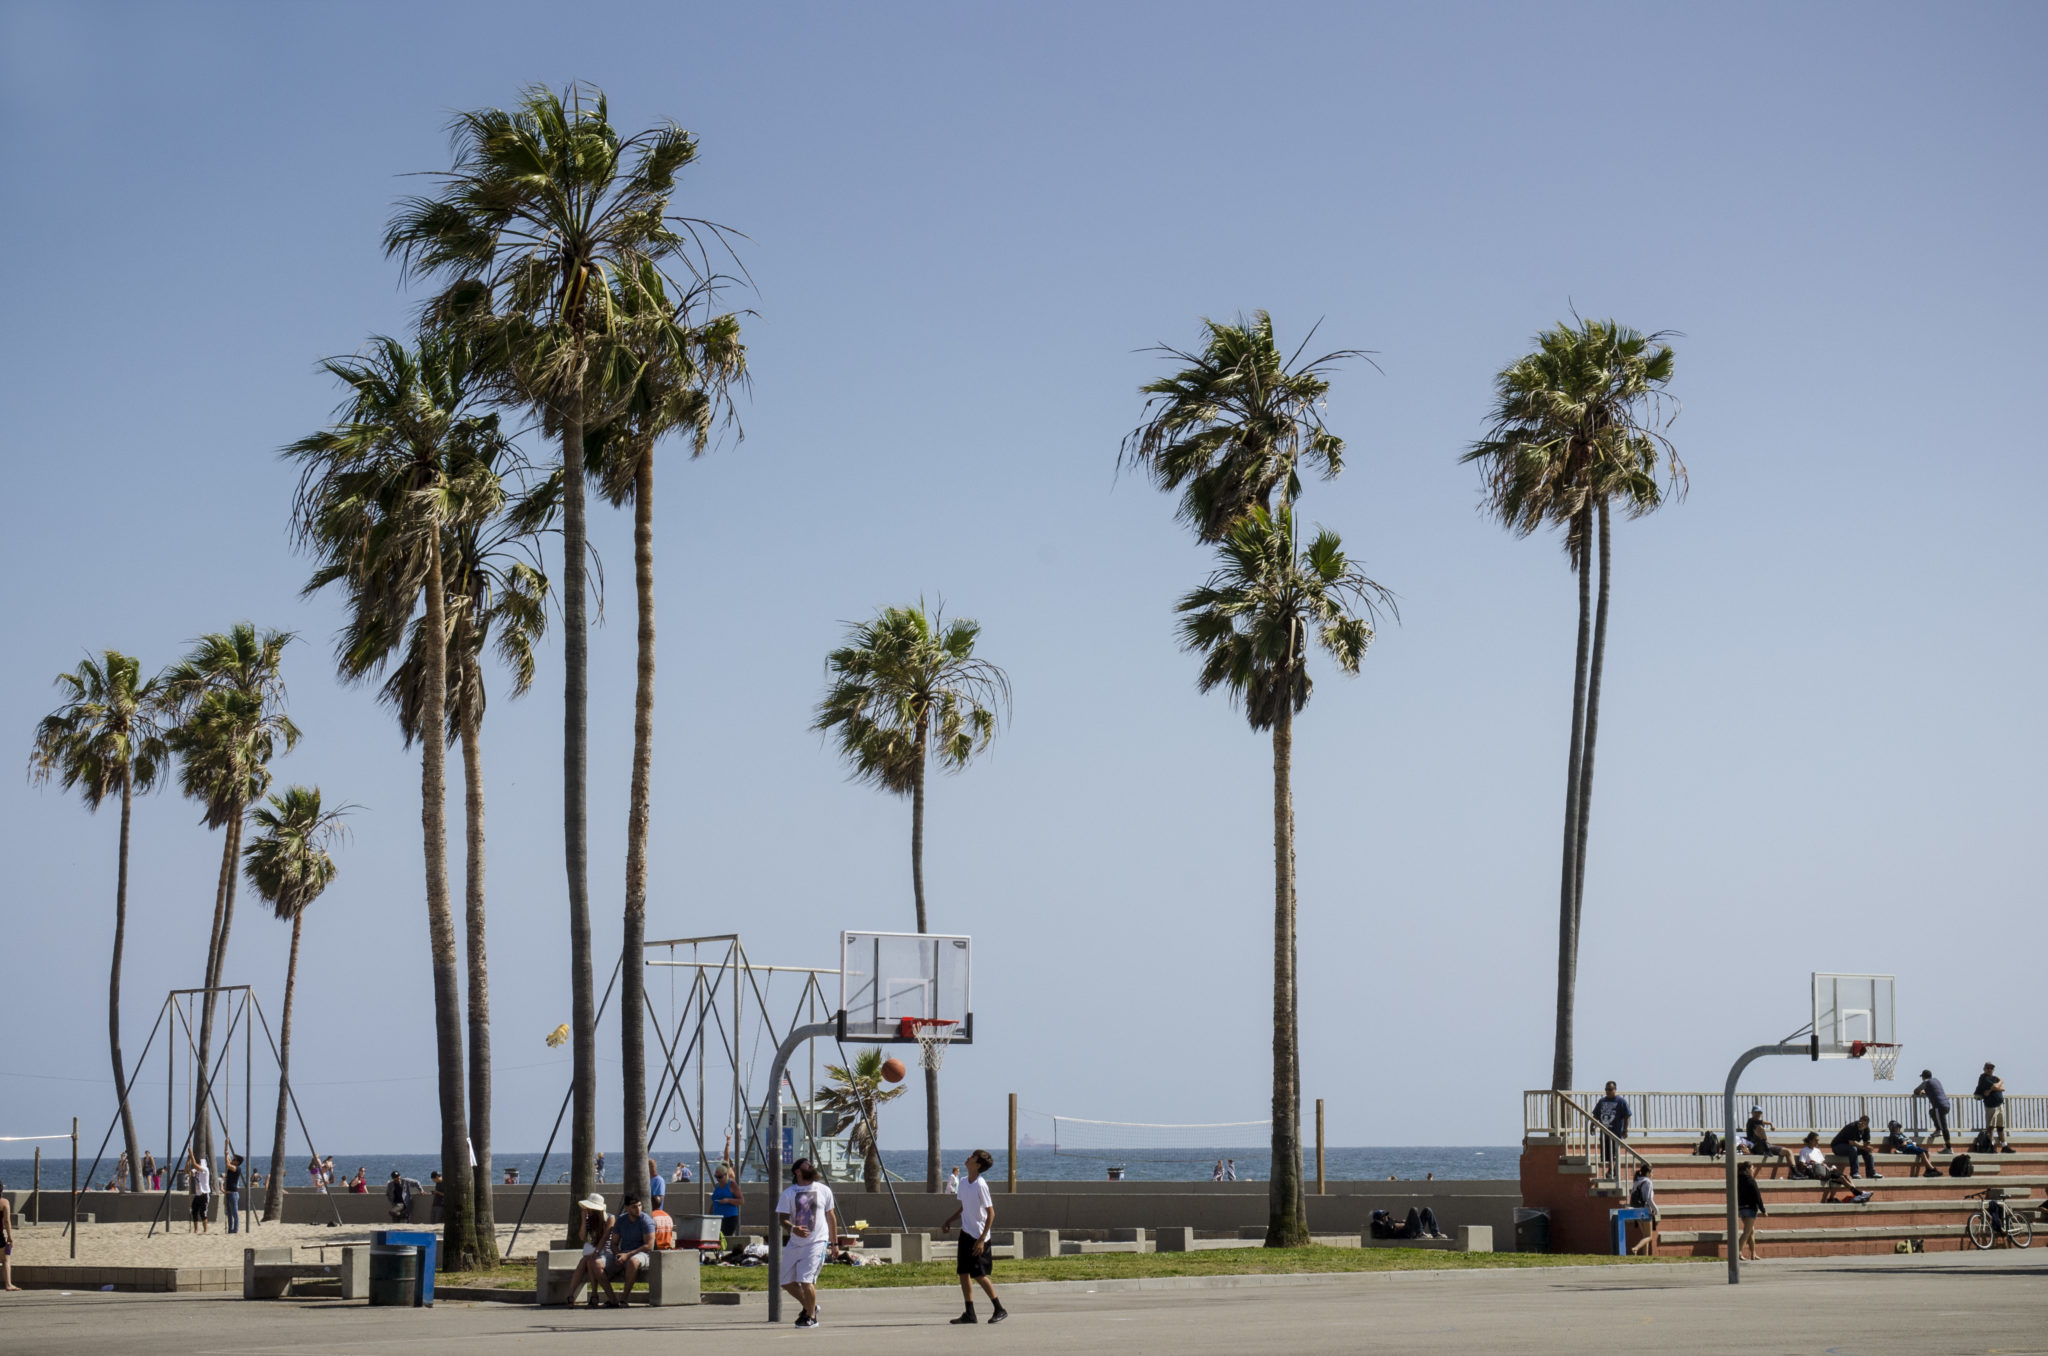 Venice-Beach-Boardwalk-Basketballfield